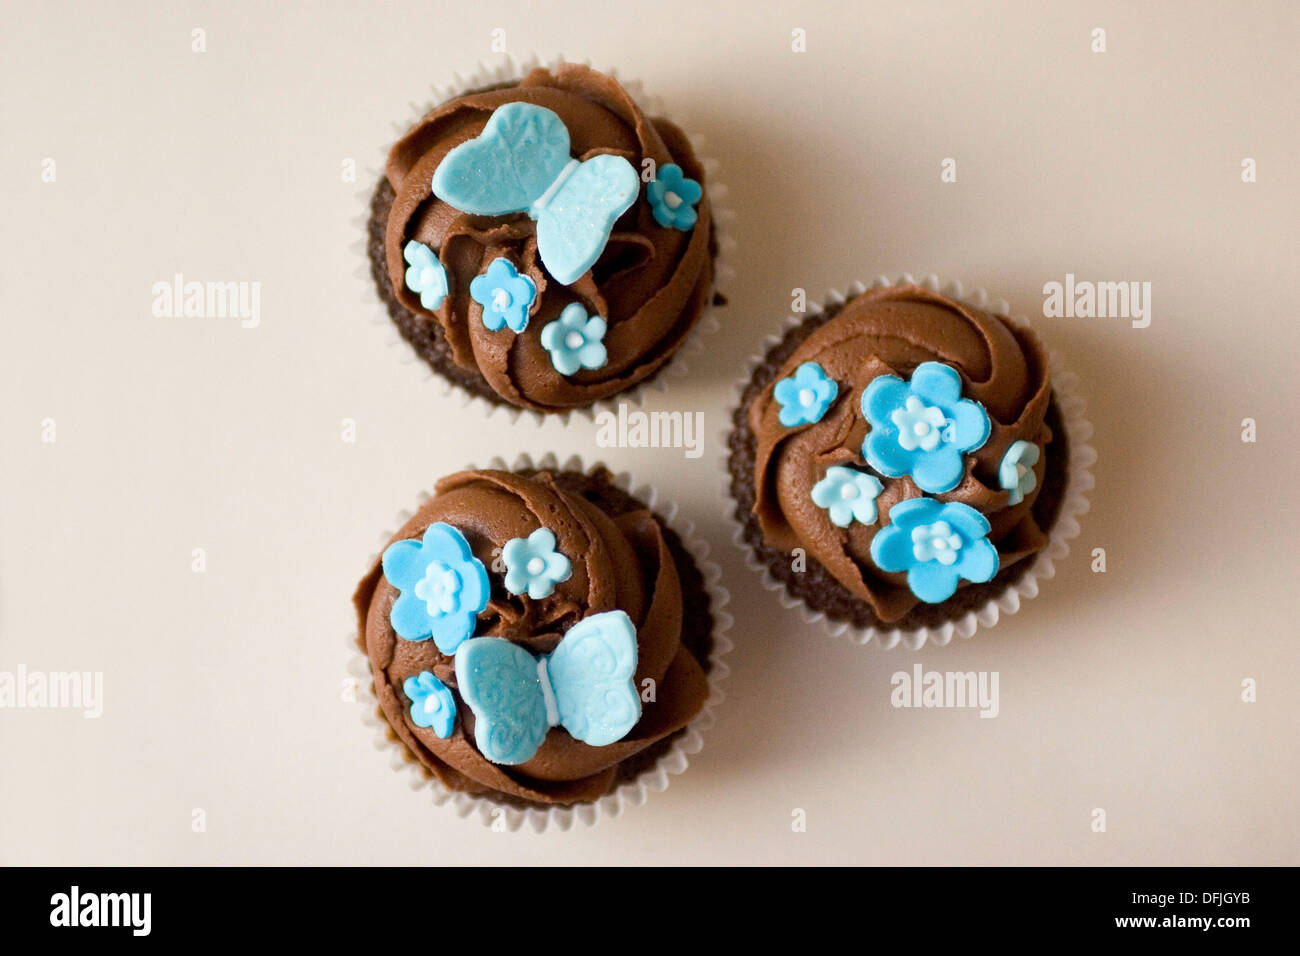 Three Cupcakes With Chocolate Frosting Swirl And Blue Butterfly And